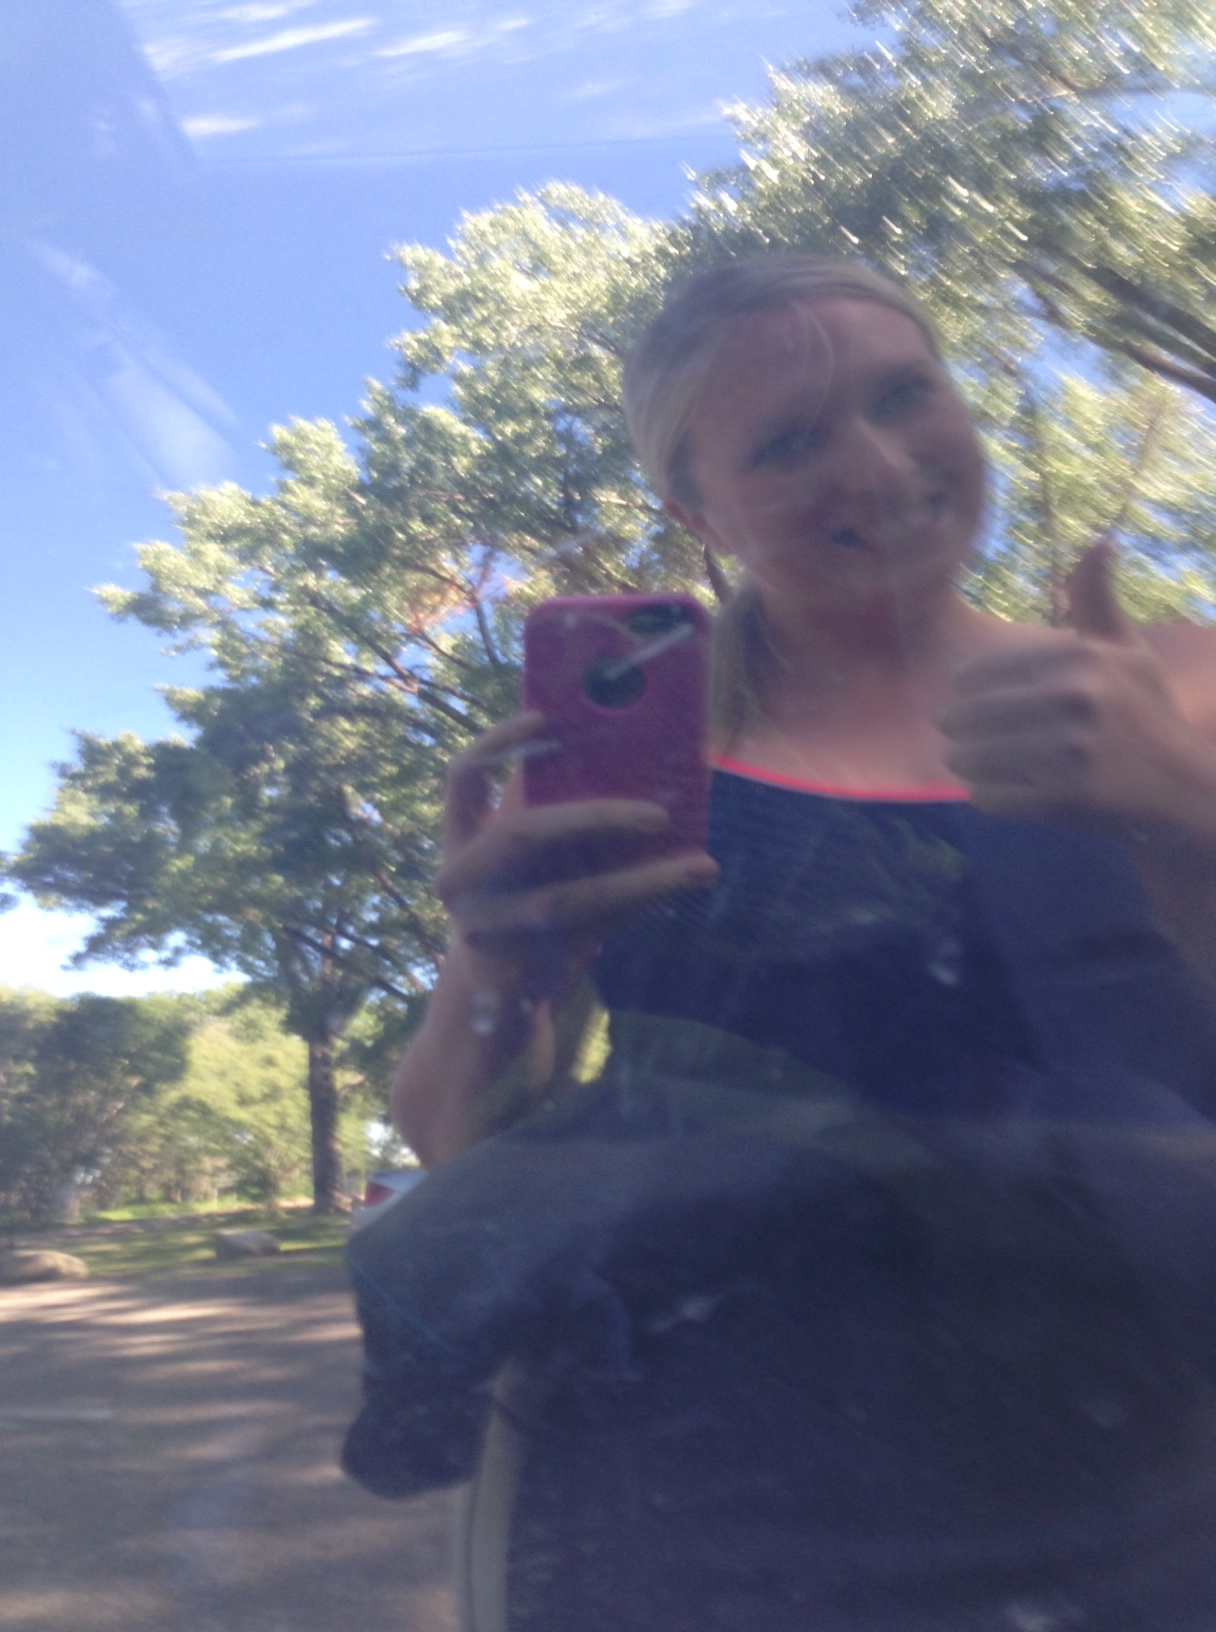 Car window selfie in my swimsuit and wetsuit